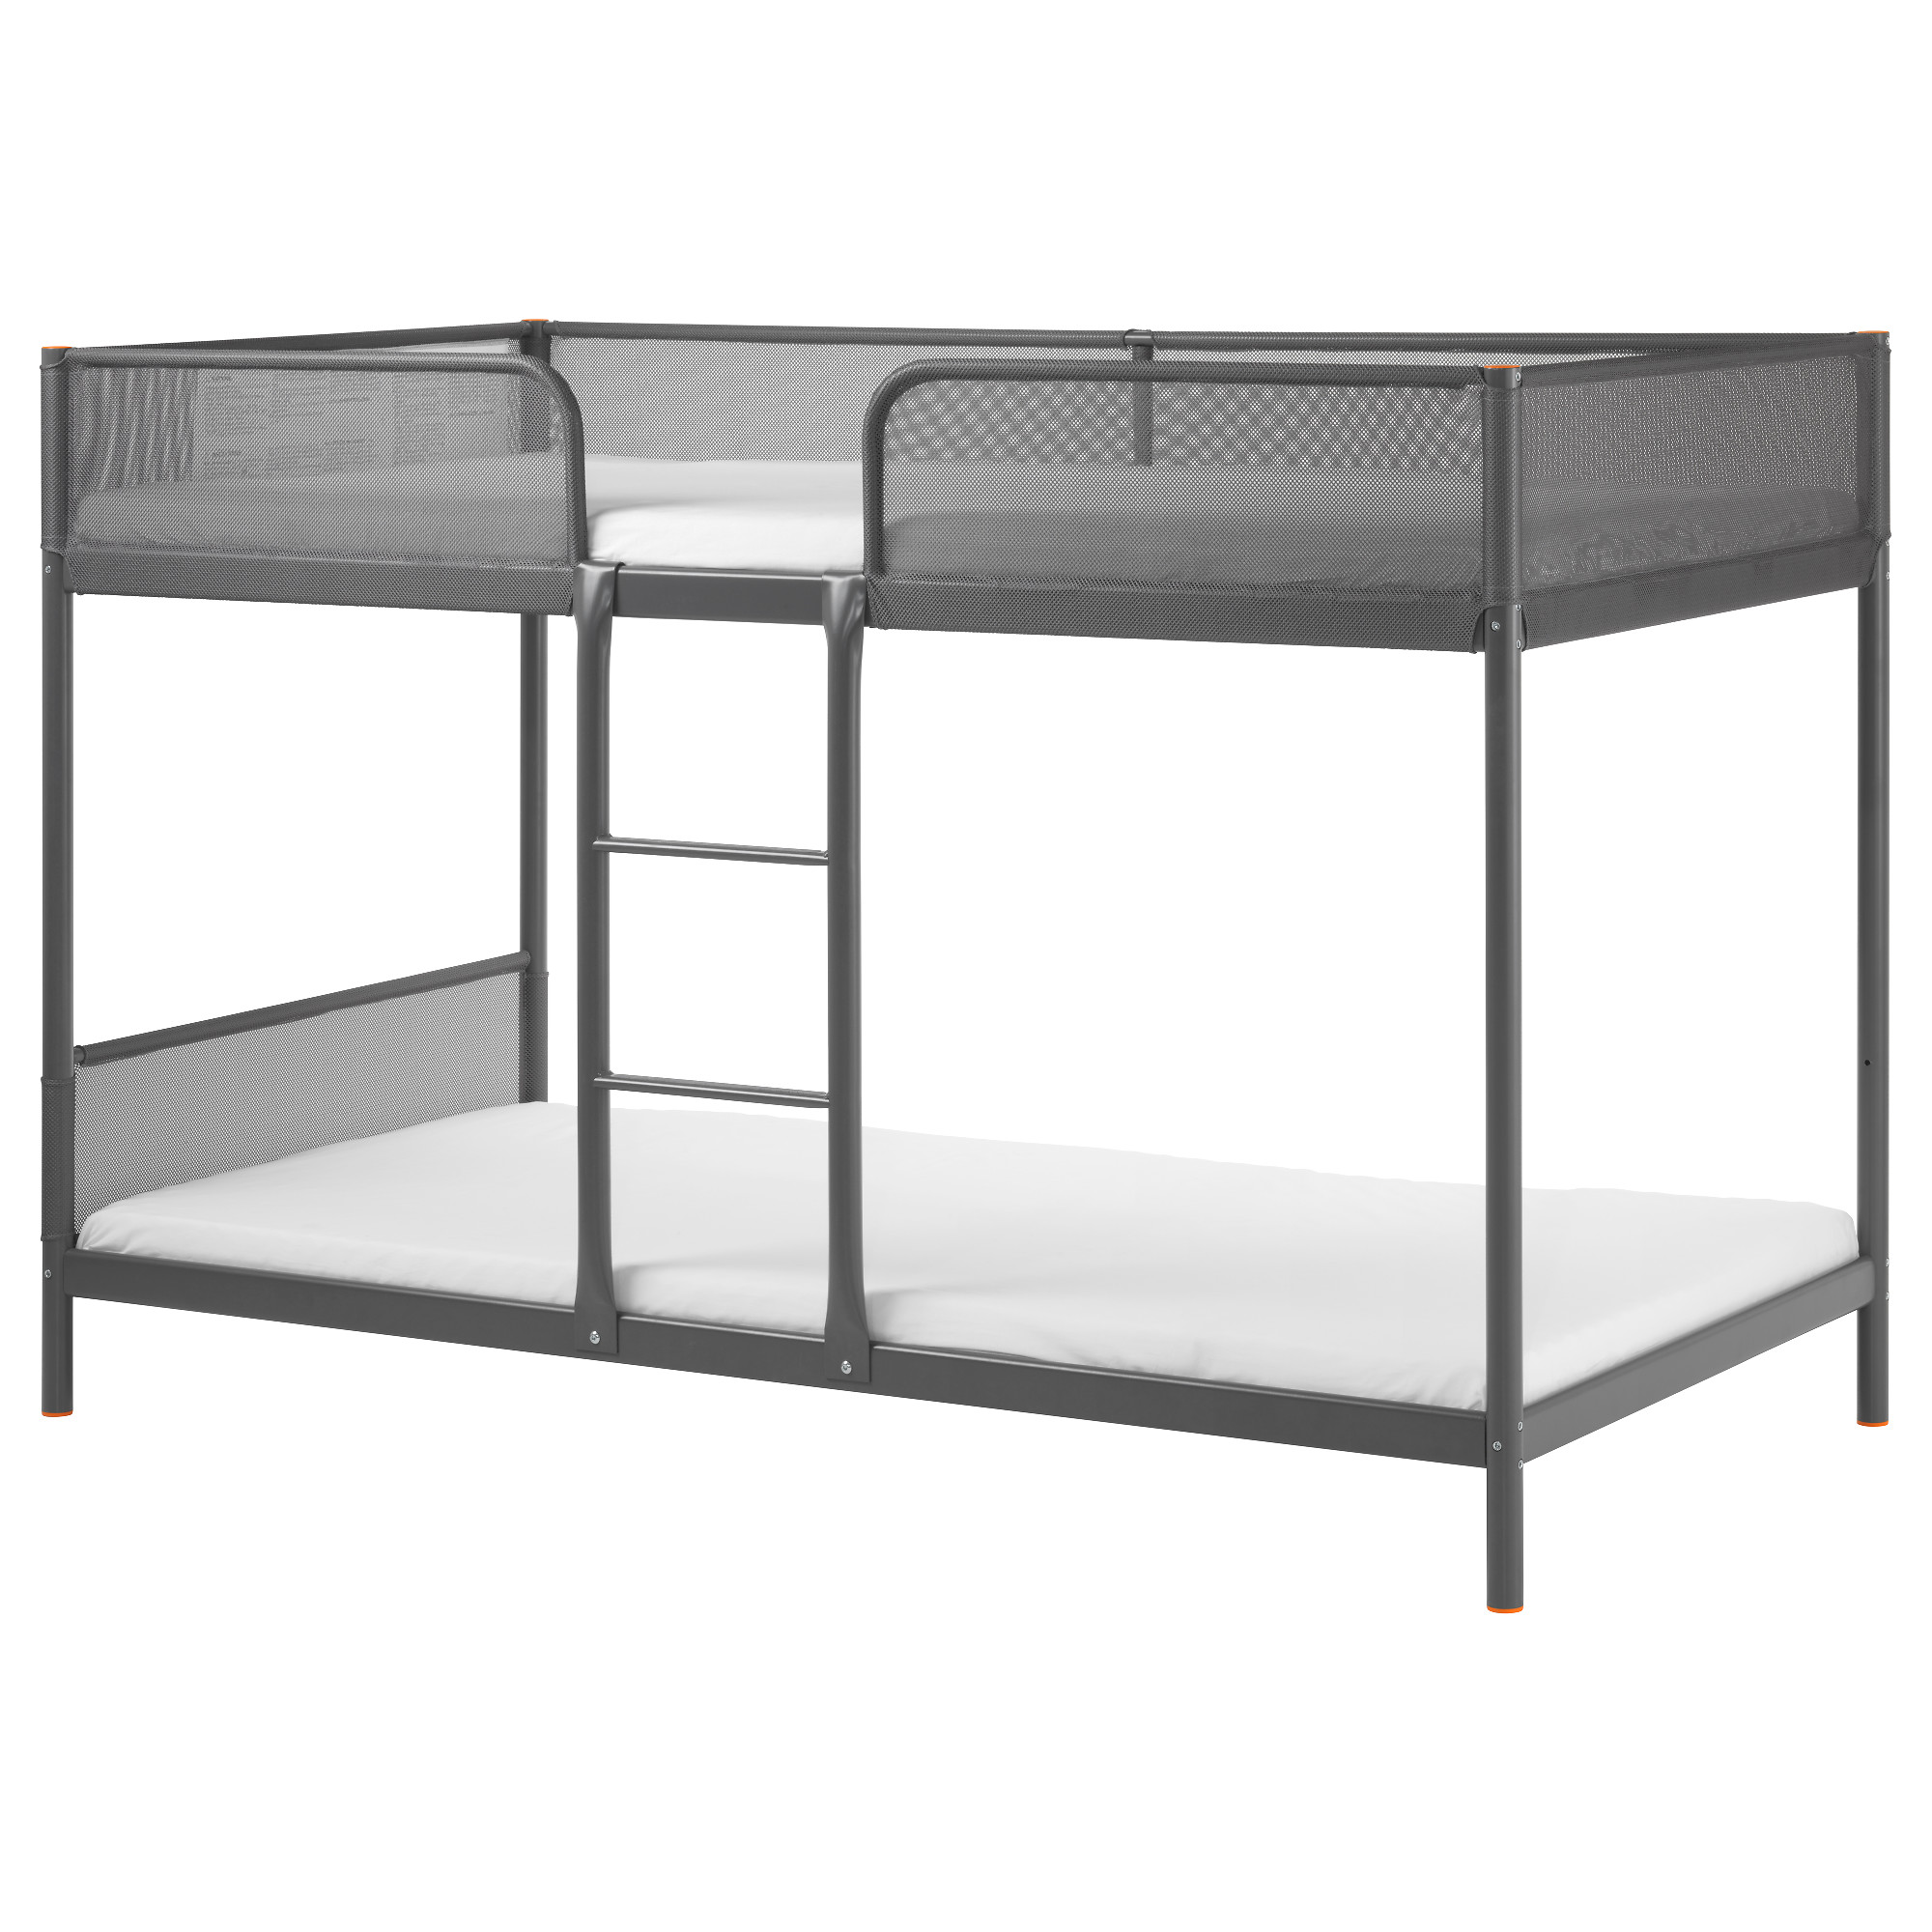 Icon Waschtisch Ikea Unterschrank ~ Related Keywords & Suggestions for ikea bunk bed frame